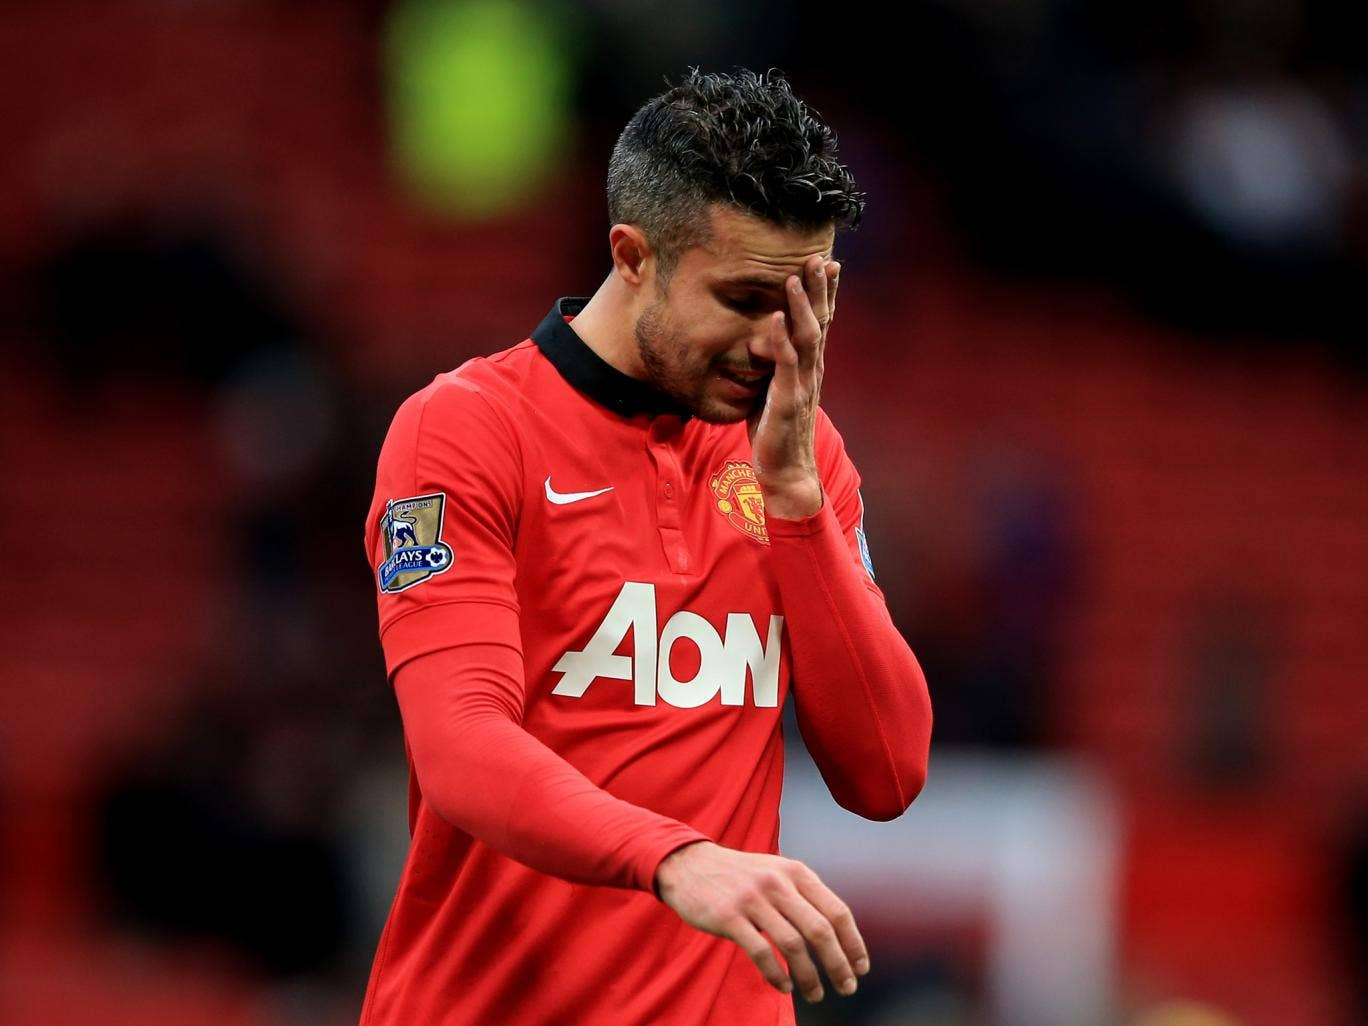 Rumours that Robin van Persie handed in a transfer request have been dismissed as 'nonsense' by Manchester United manager David Moyes